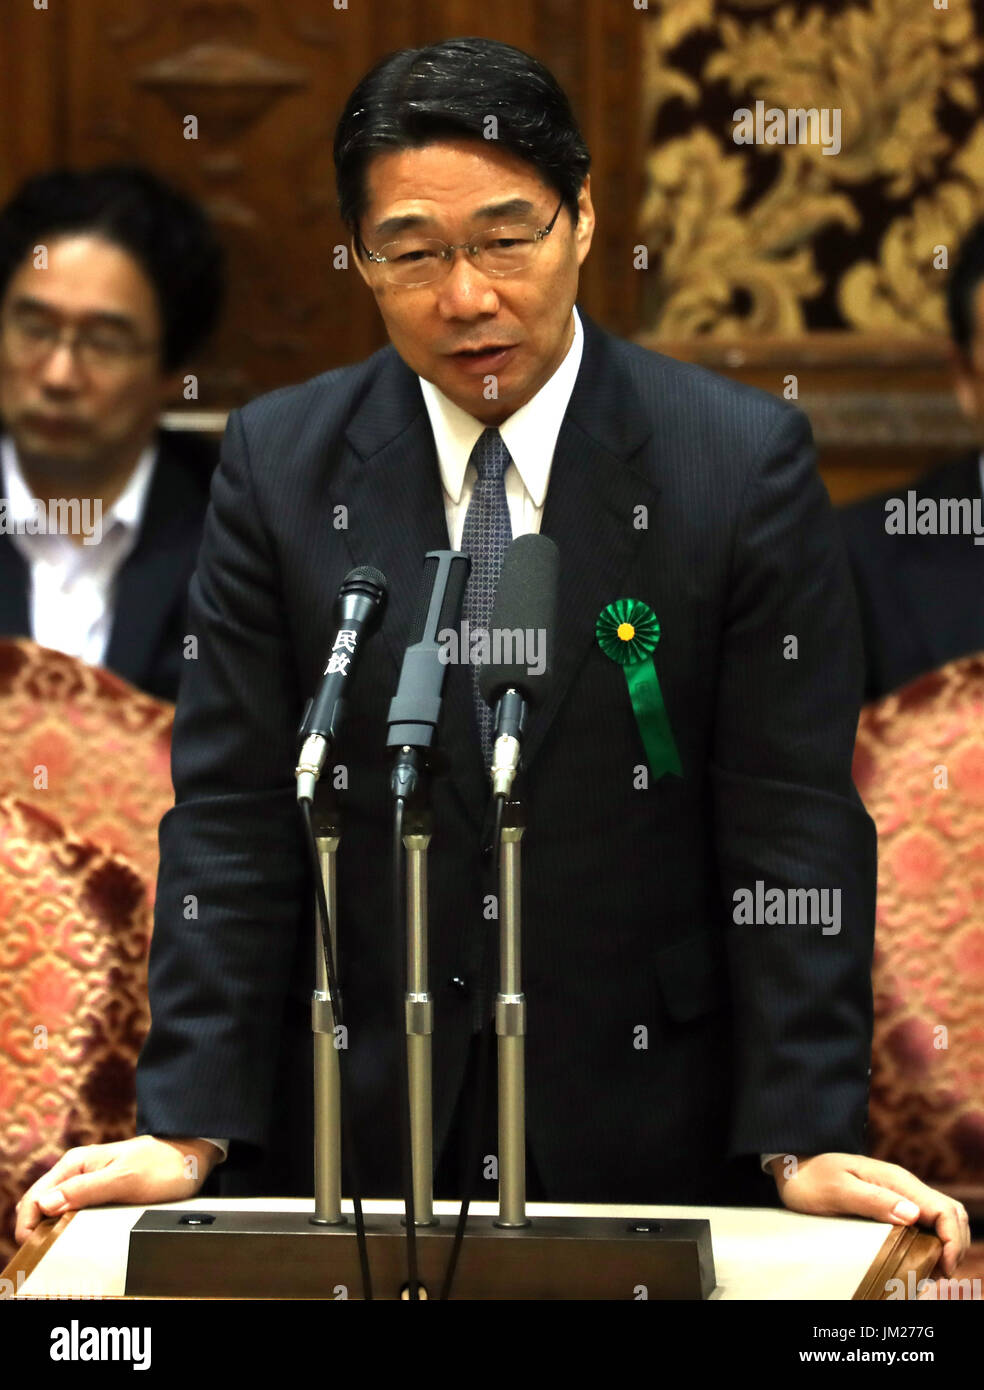 Tokyo, Japan. 25th July, 2017. Former vice Education Minister Kihei Maekawa answers a question by an opposition lawmaker at Upper House's budget committee session at the National Diet in Tokyo on Tuesday, July 25, 2017. Abe said he was not asked by his friend Kotaro Kake for help in opening a new university department in Imabari. Credit: Yoshio Tsunoda/AFLO/Alamy Live News - Stock Image